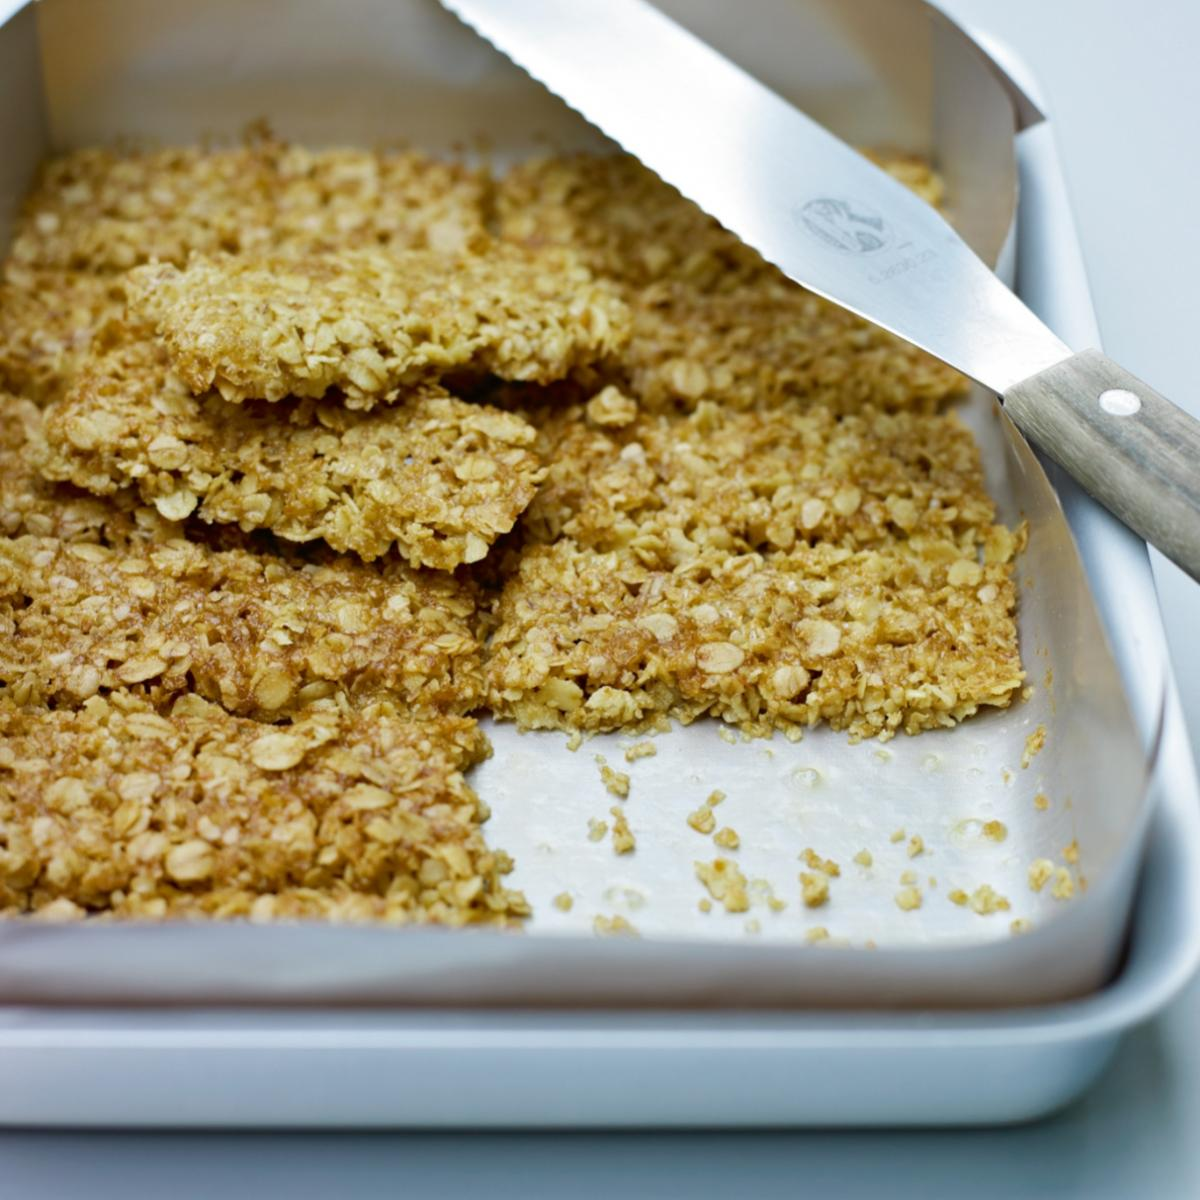 A picture of Delia's Whole Oat Crunchies recipe